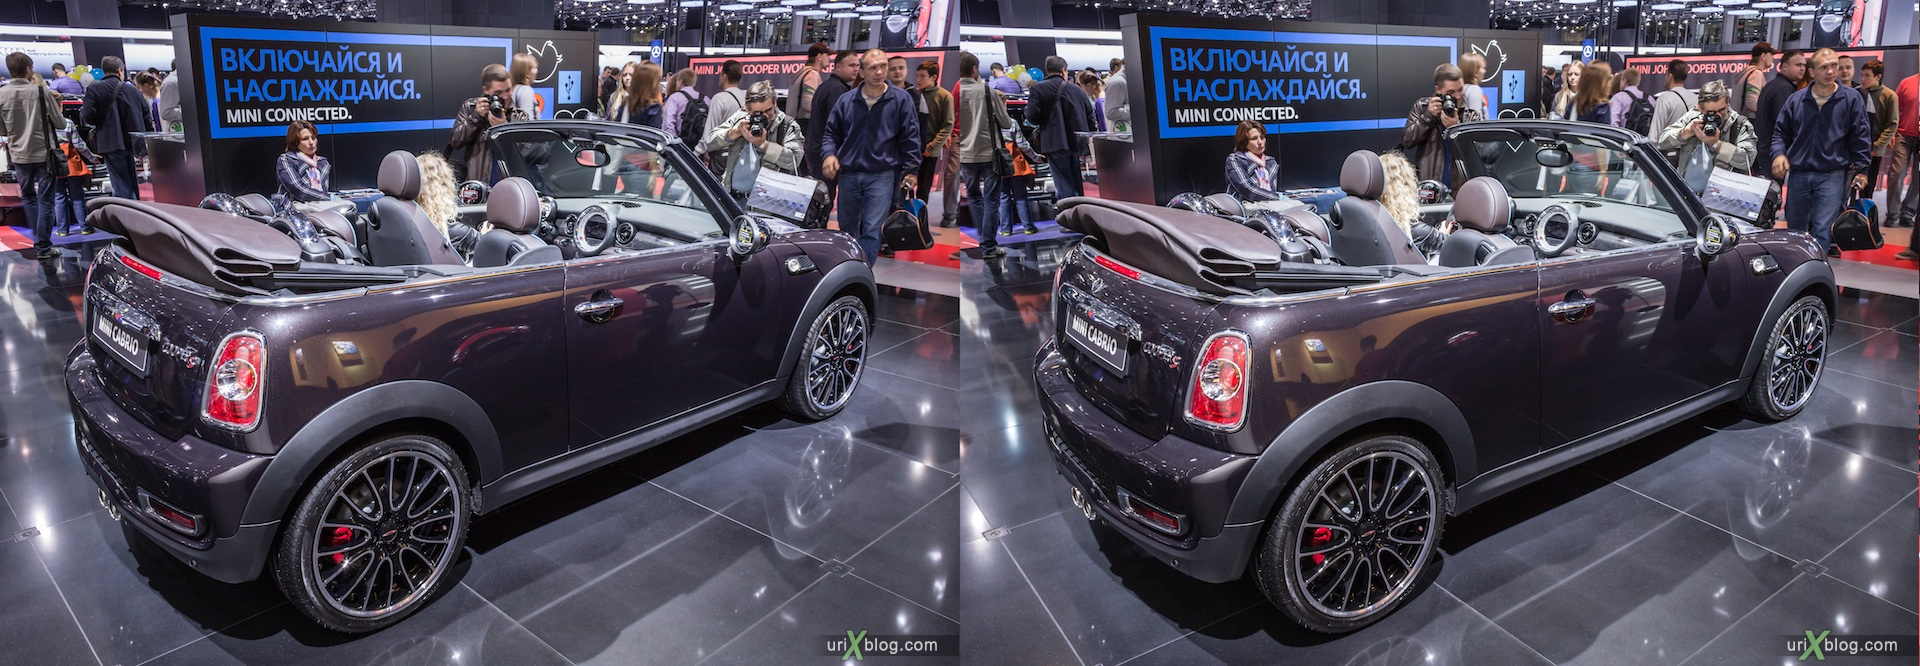 2012, Mini Cabrio, Moscow International Automobile Salon, auto show, 3D, stereo pair, cross-eyed, crossview